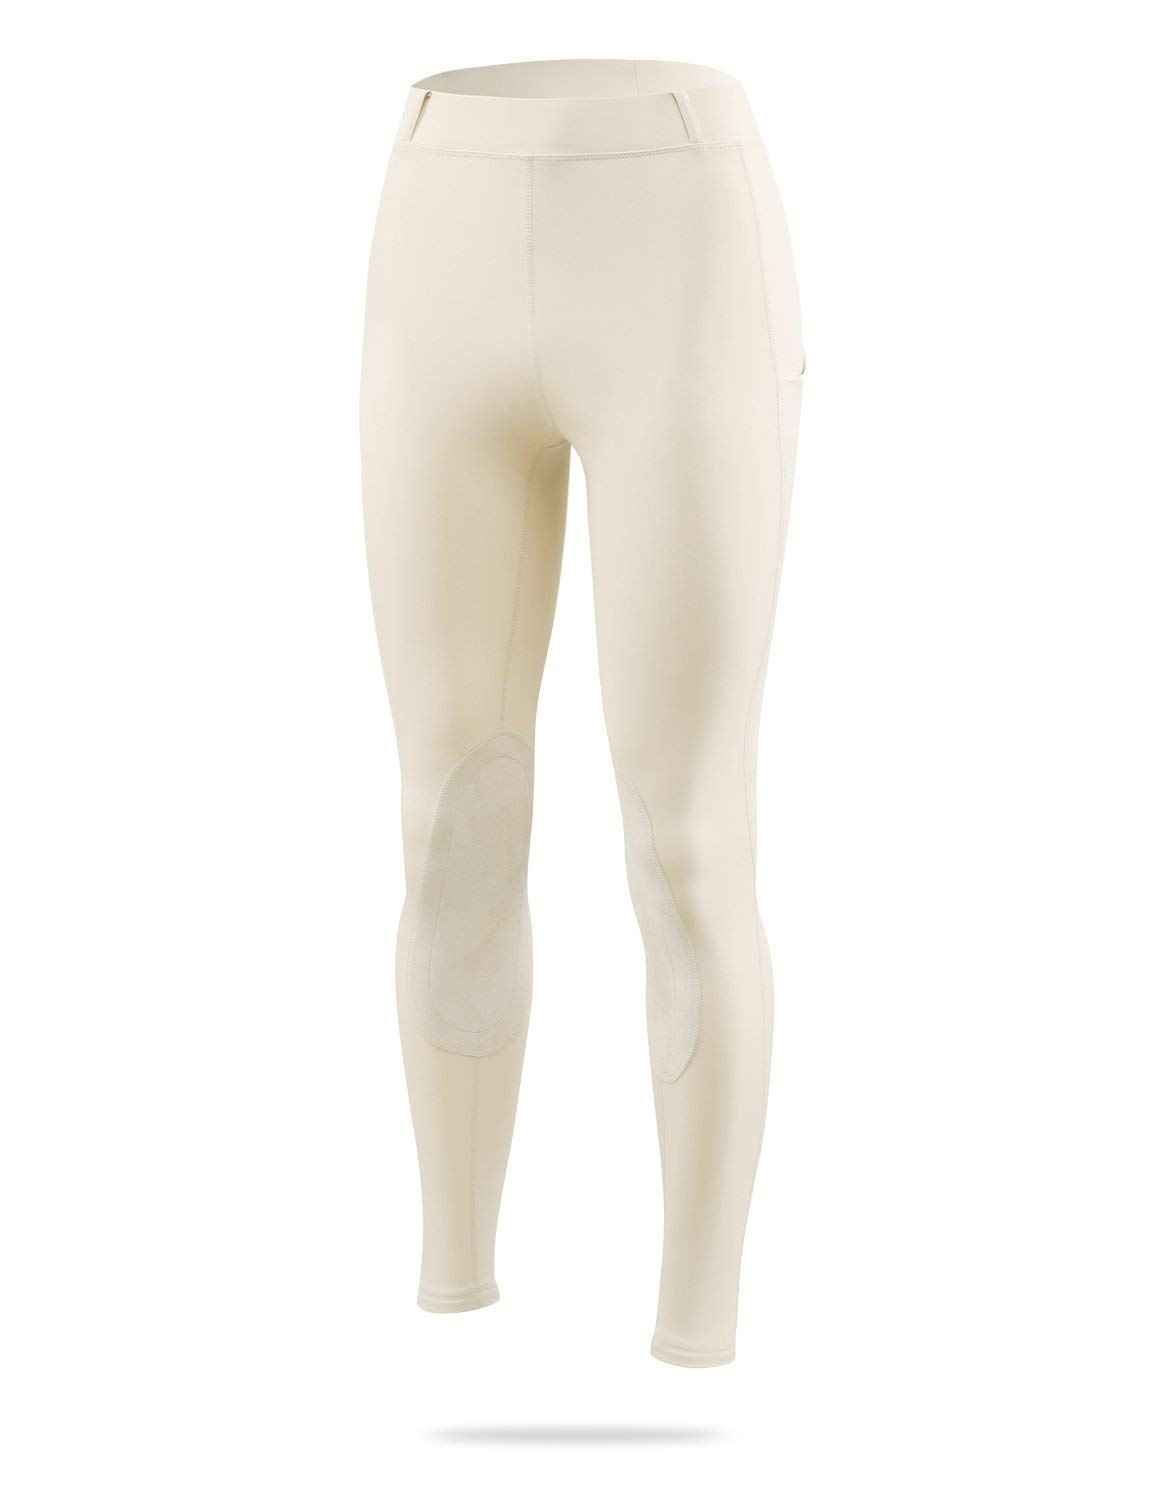 Details about  /BALEAF Women/'s Riding Tights Horse Pants Equestrian Breeches Knee Patch Grip ...